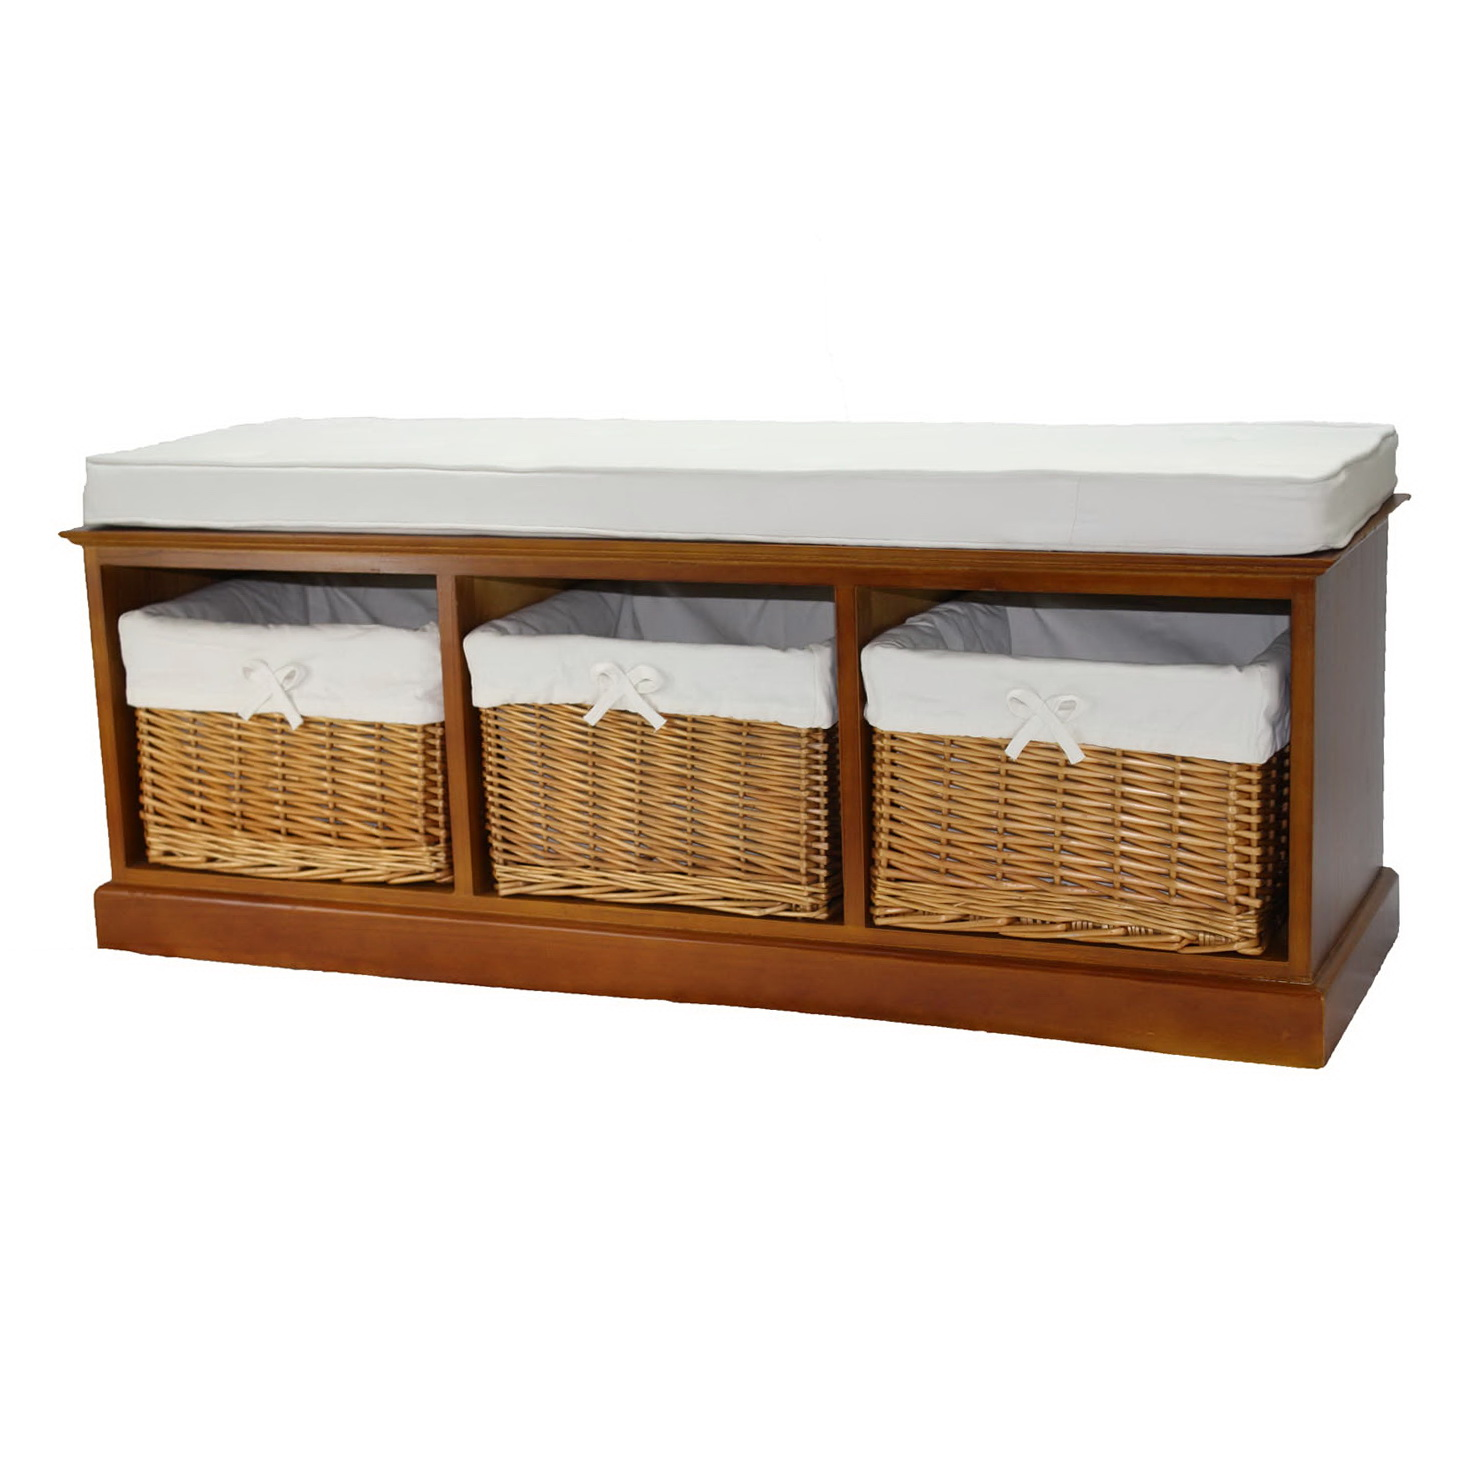 Small Storage Bench With Baskets